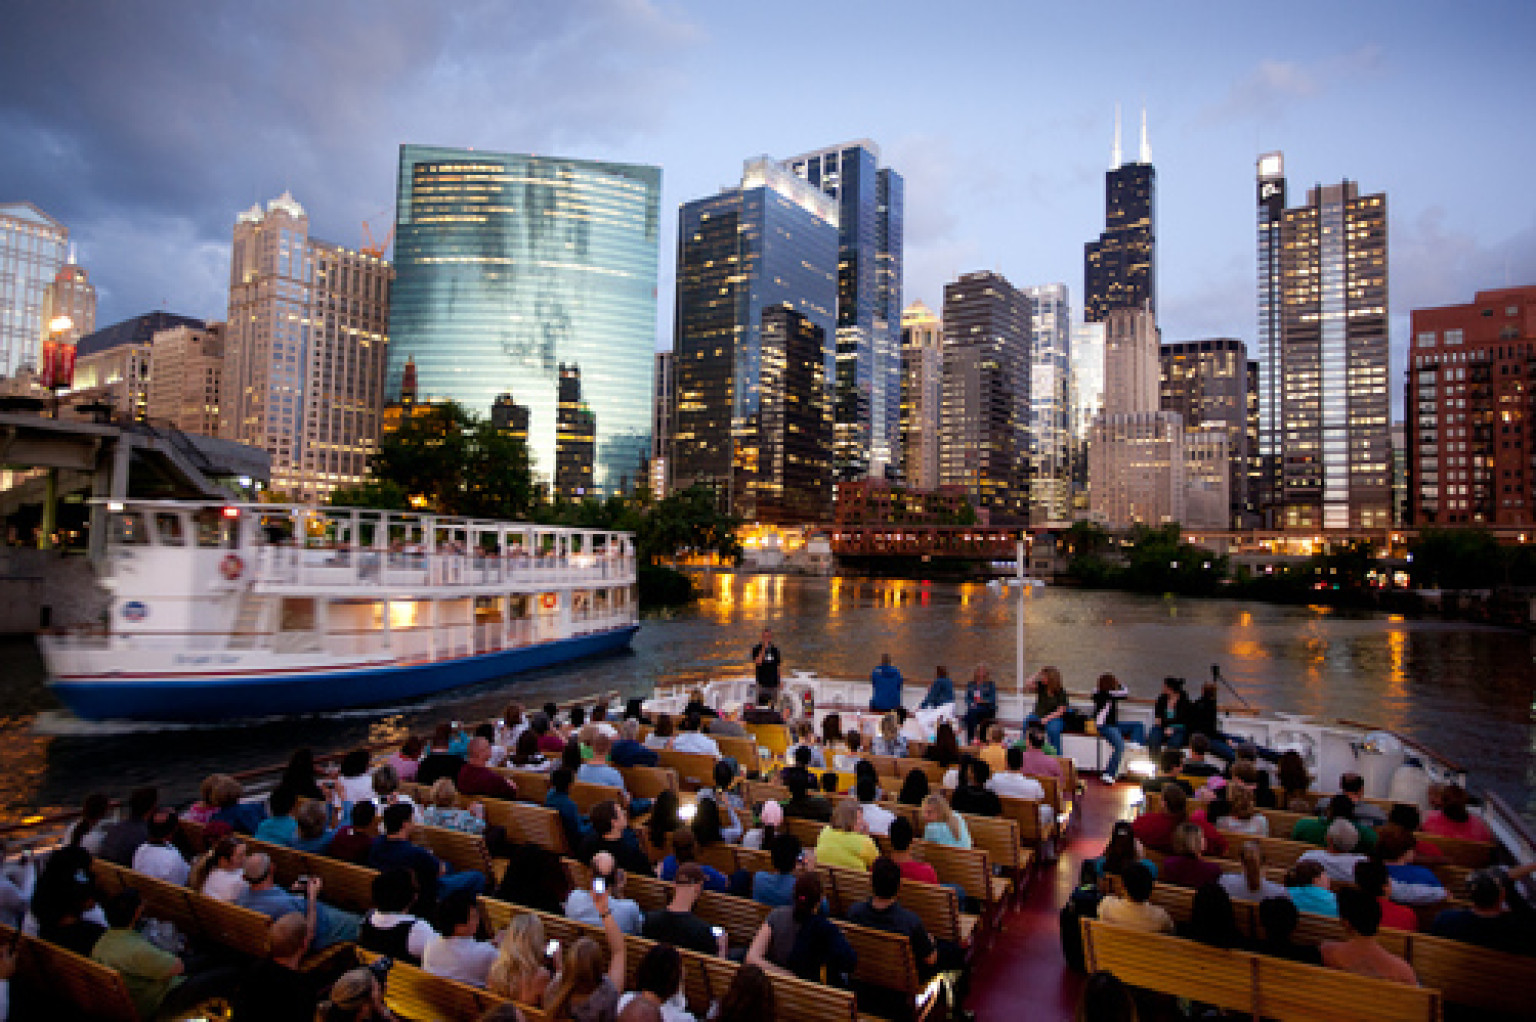 Boat Tours Off Navy Pier